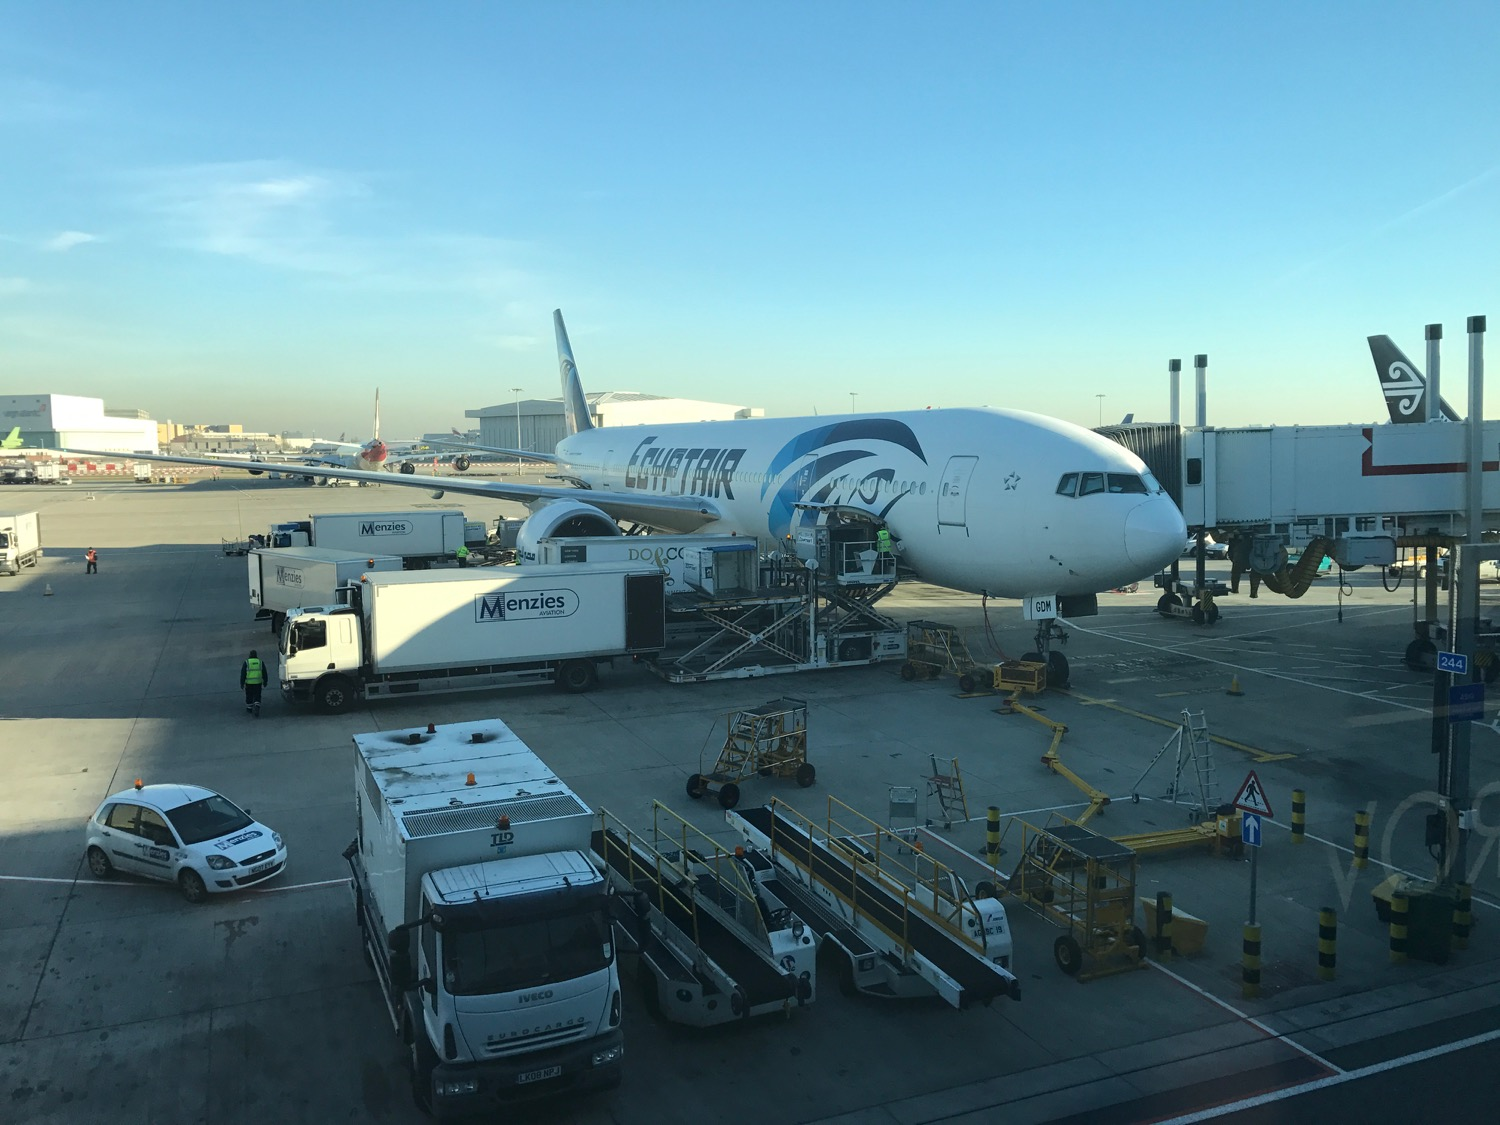 EgpytAir London to Cairo 777-300 Business Class - 7